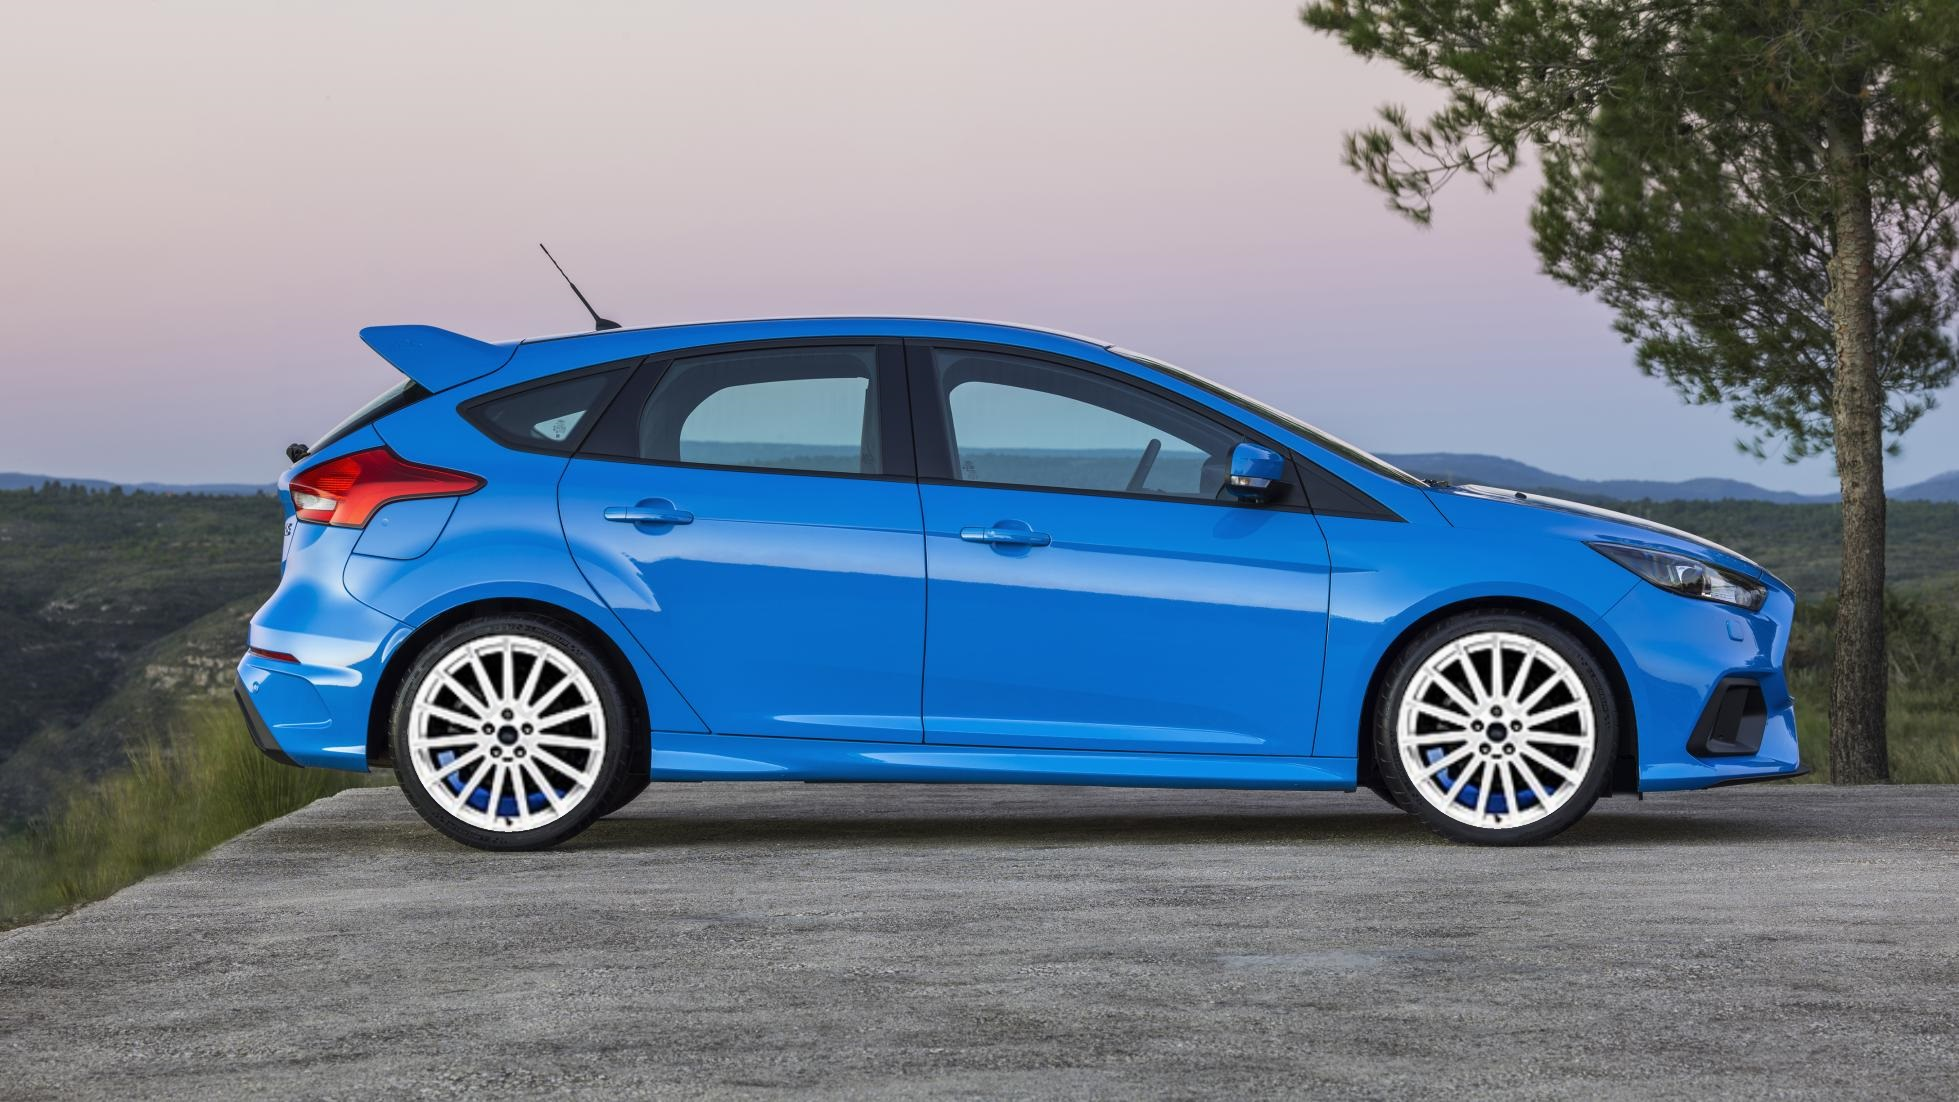 Name focus rs before white mirror jpg views 11356 size 482 9 kb